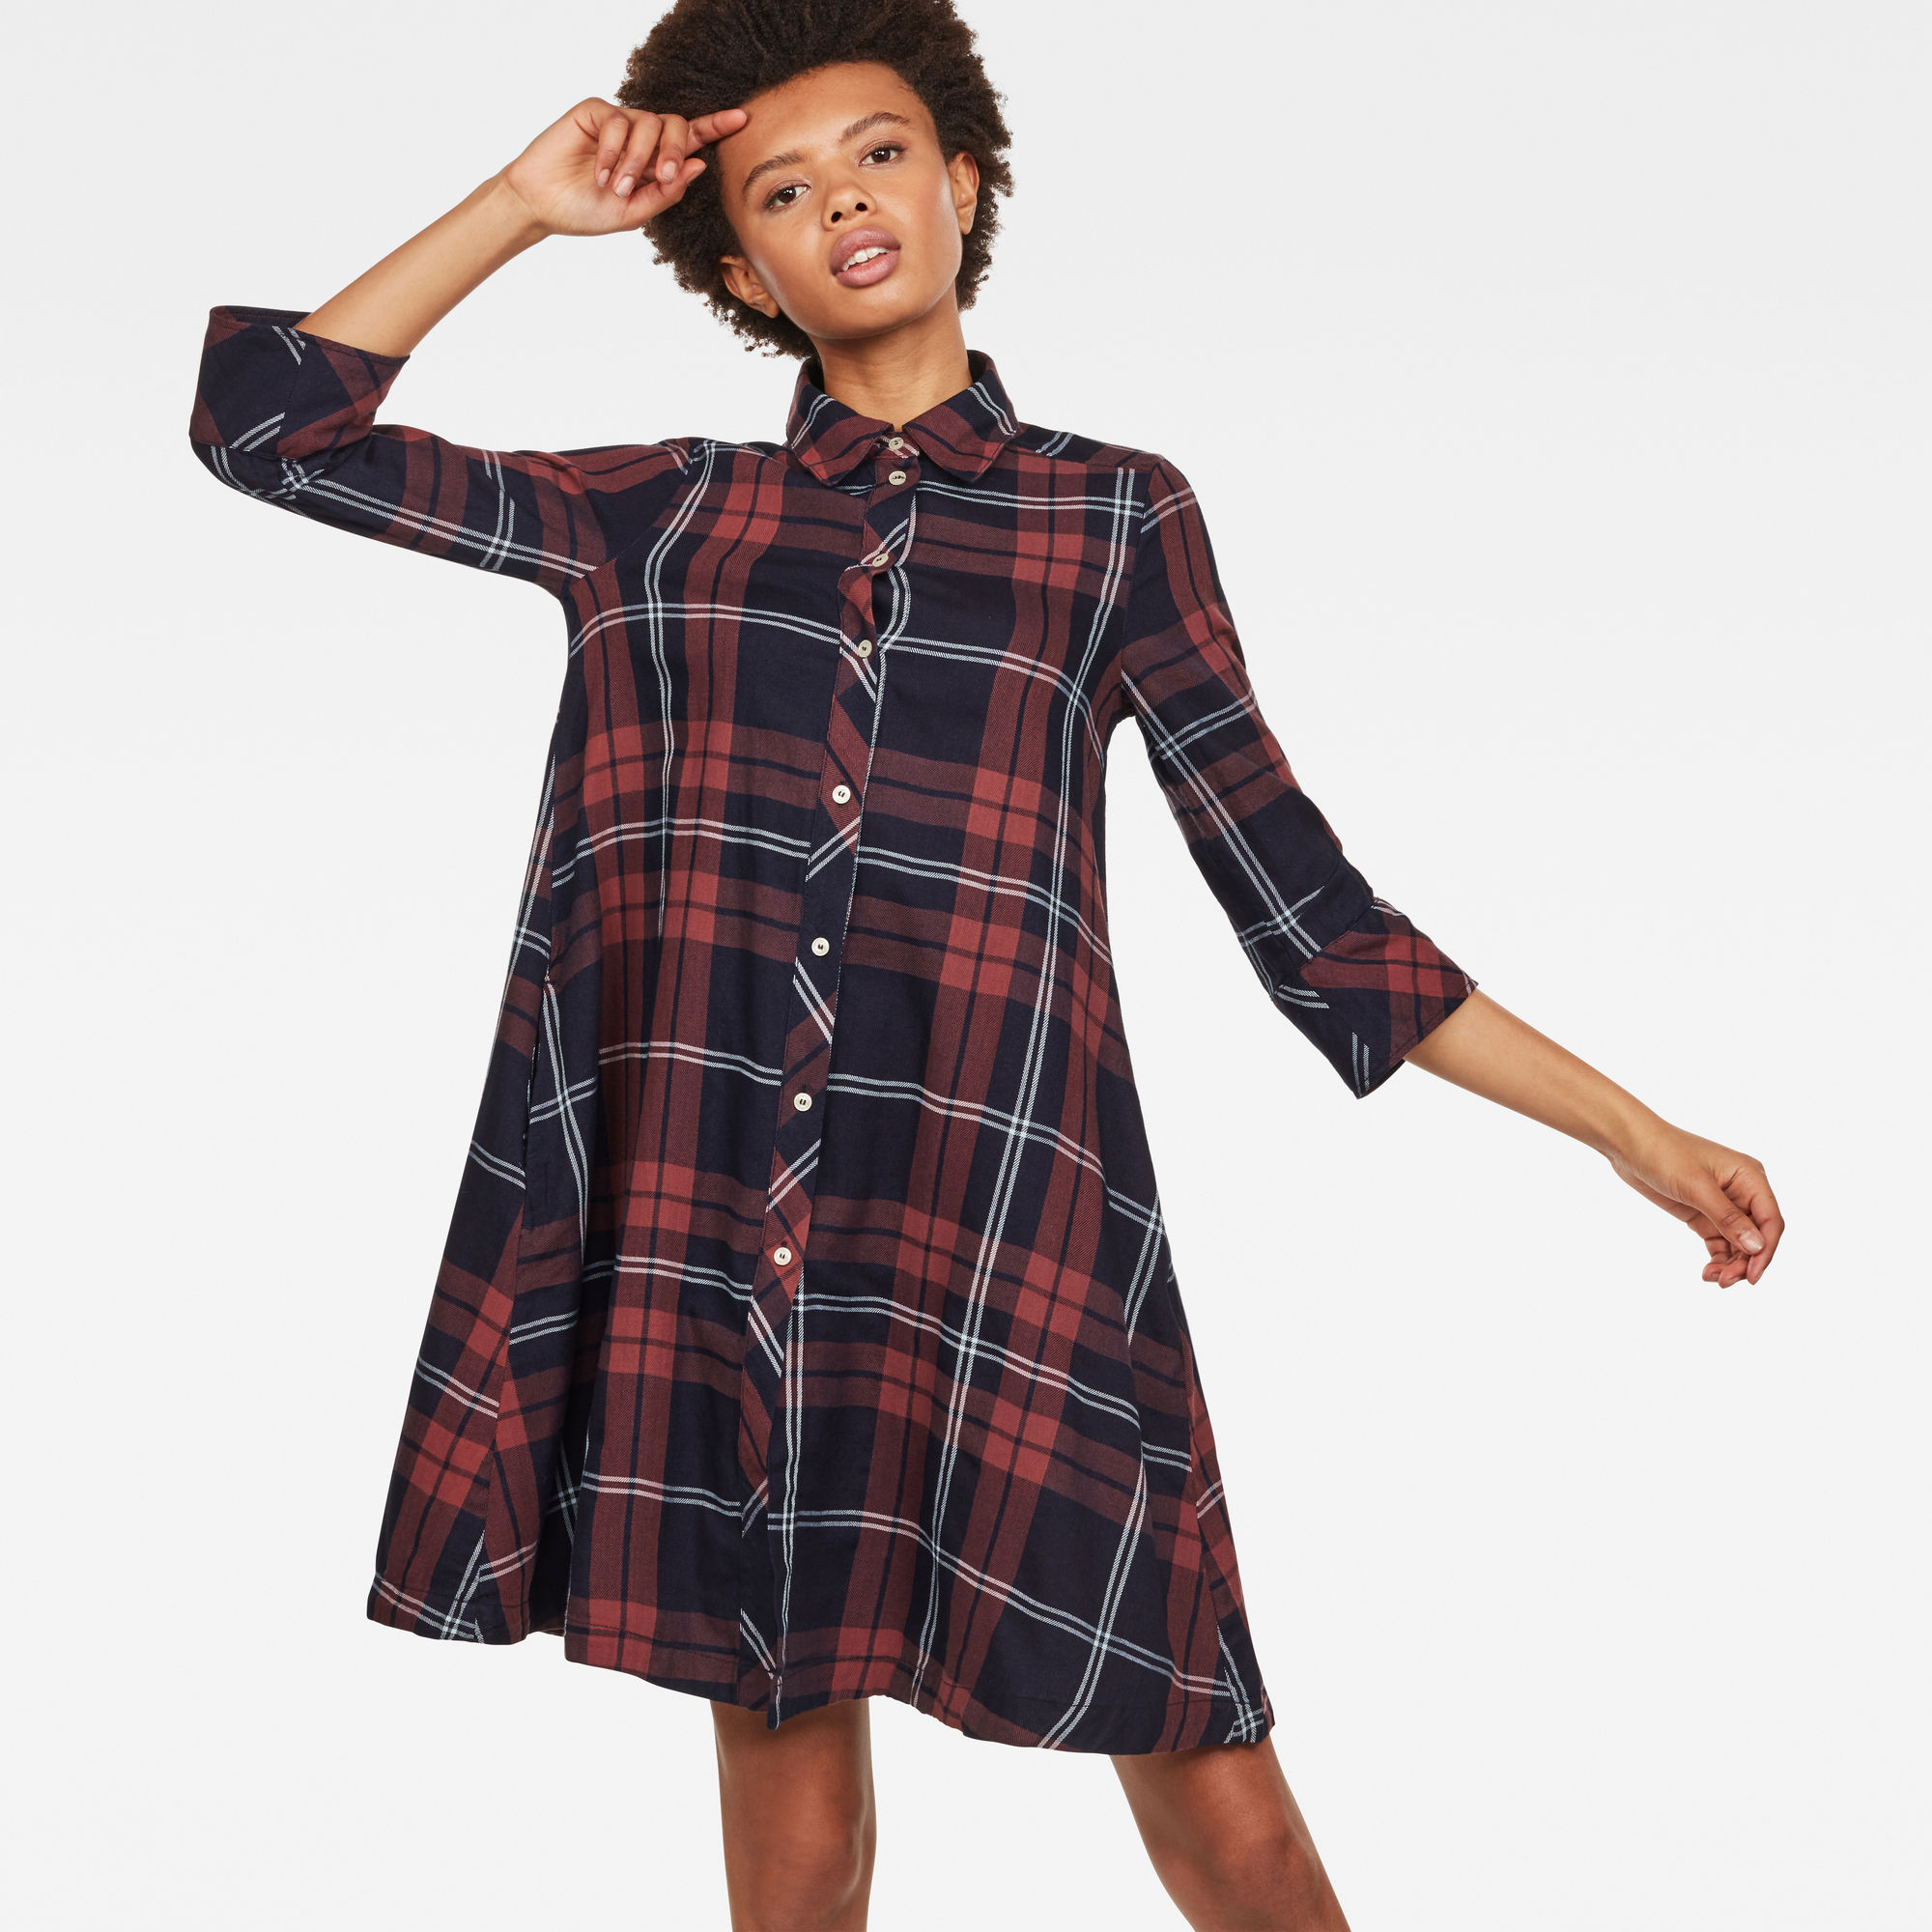 Image of G Star Raw Deline Dress